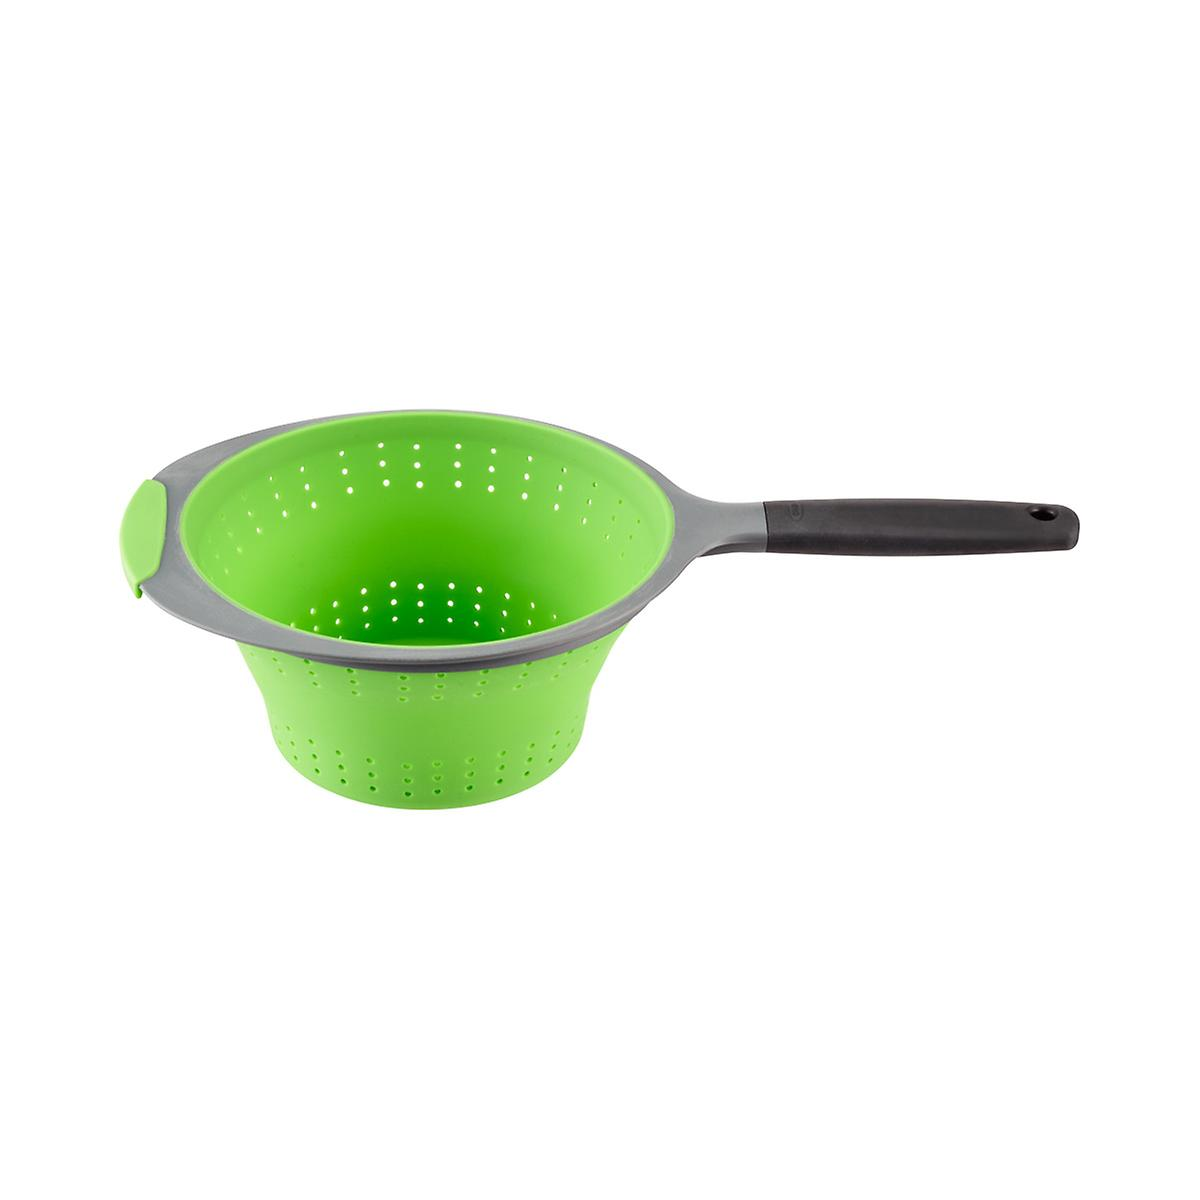 OXO 2 qt. Collapsible Strainer